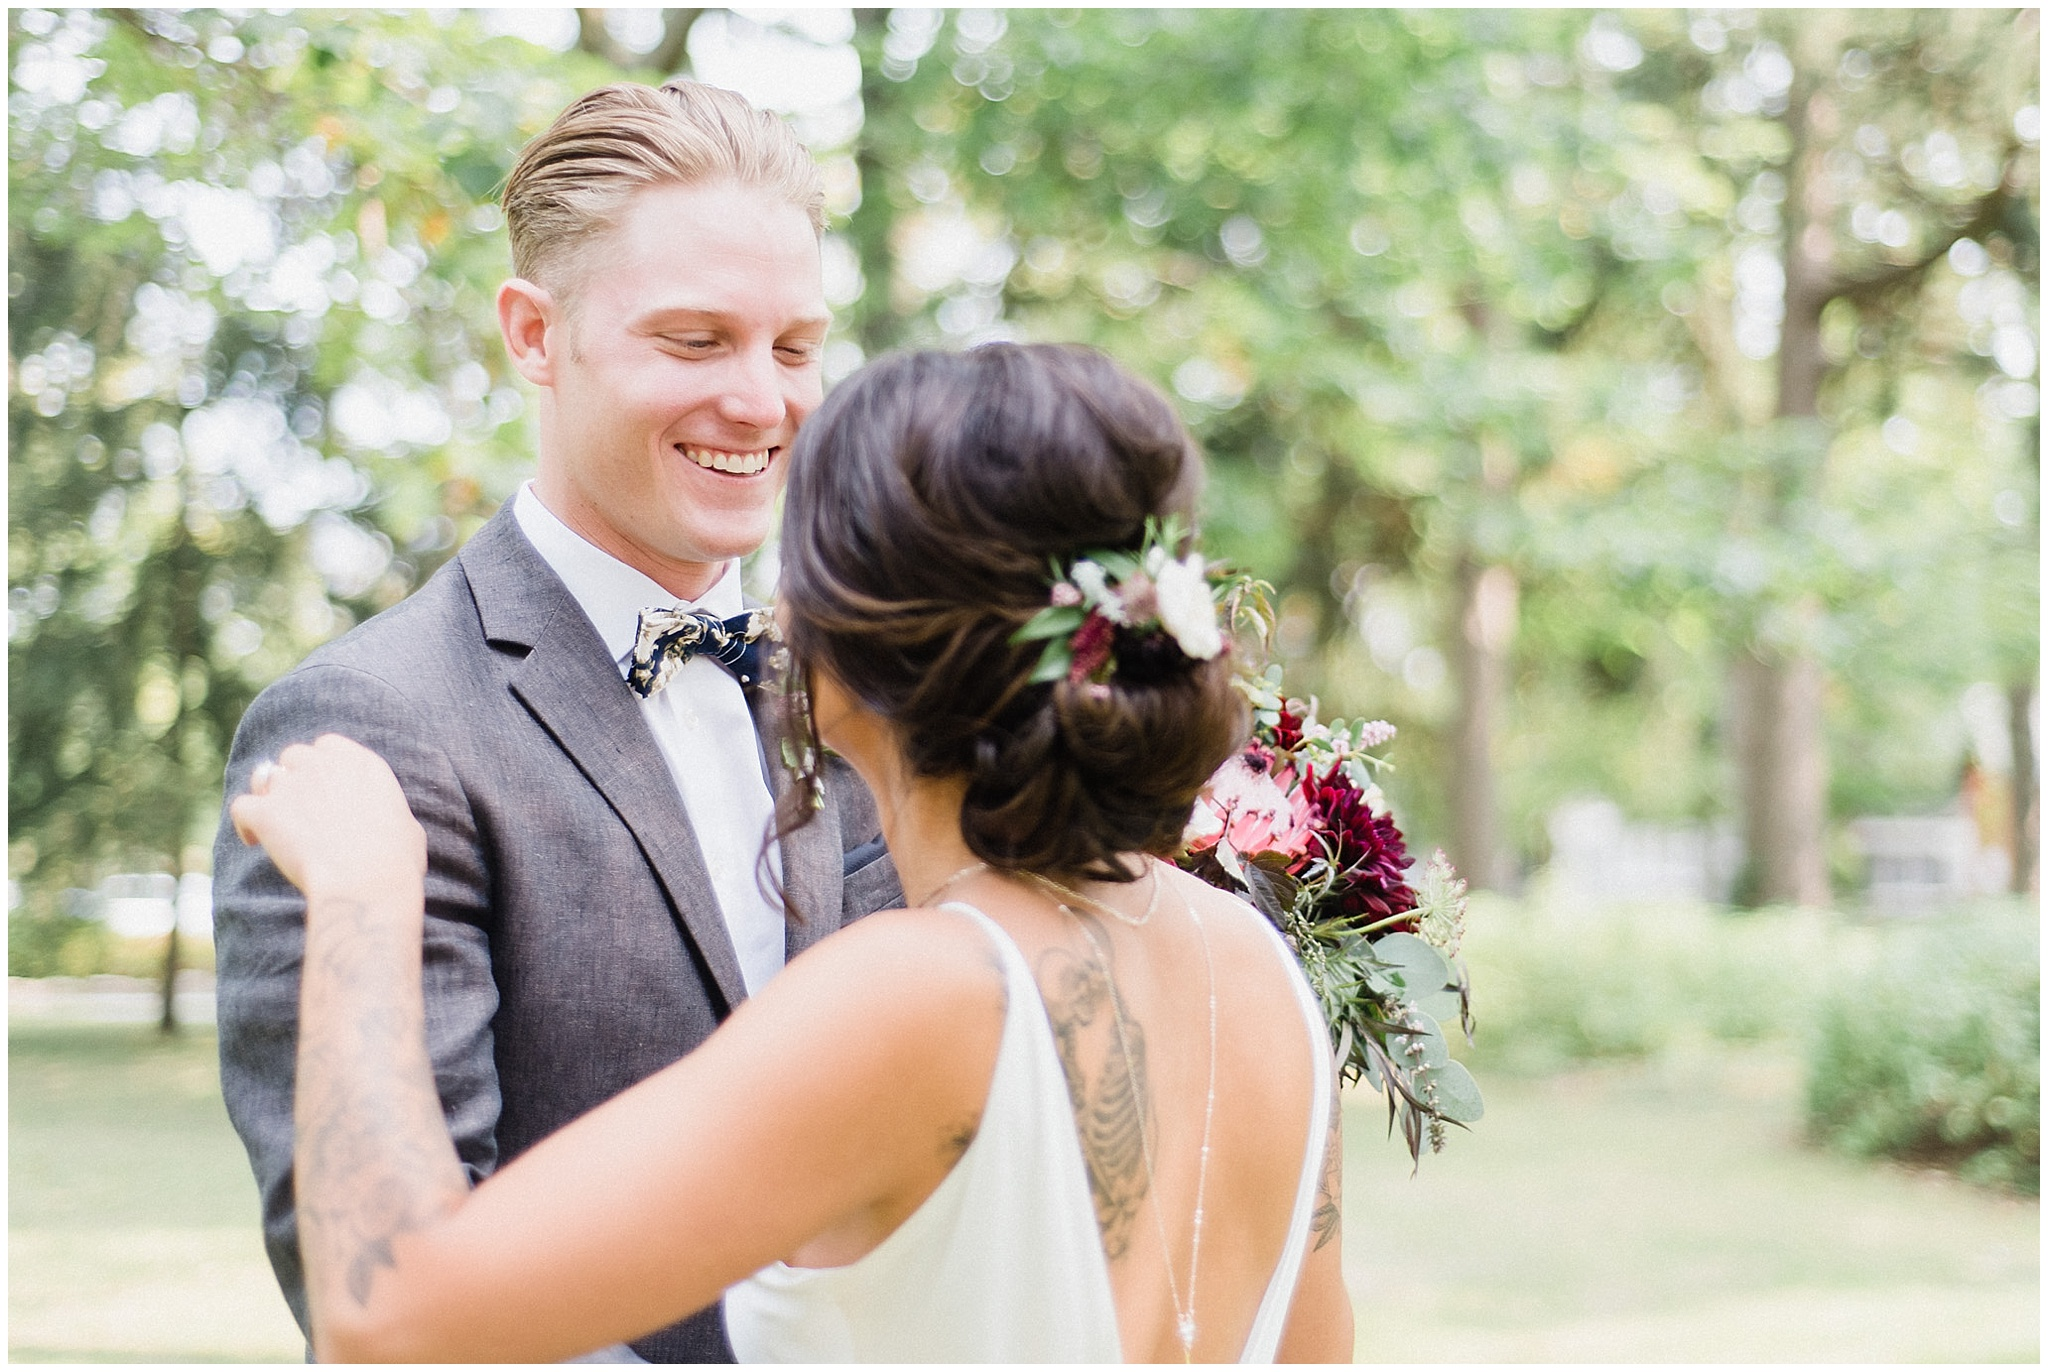 Emotional first look between bride and groom photographed by Jenn Kavanagh Photography